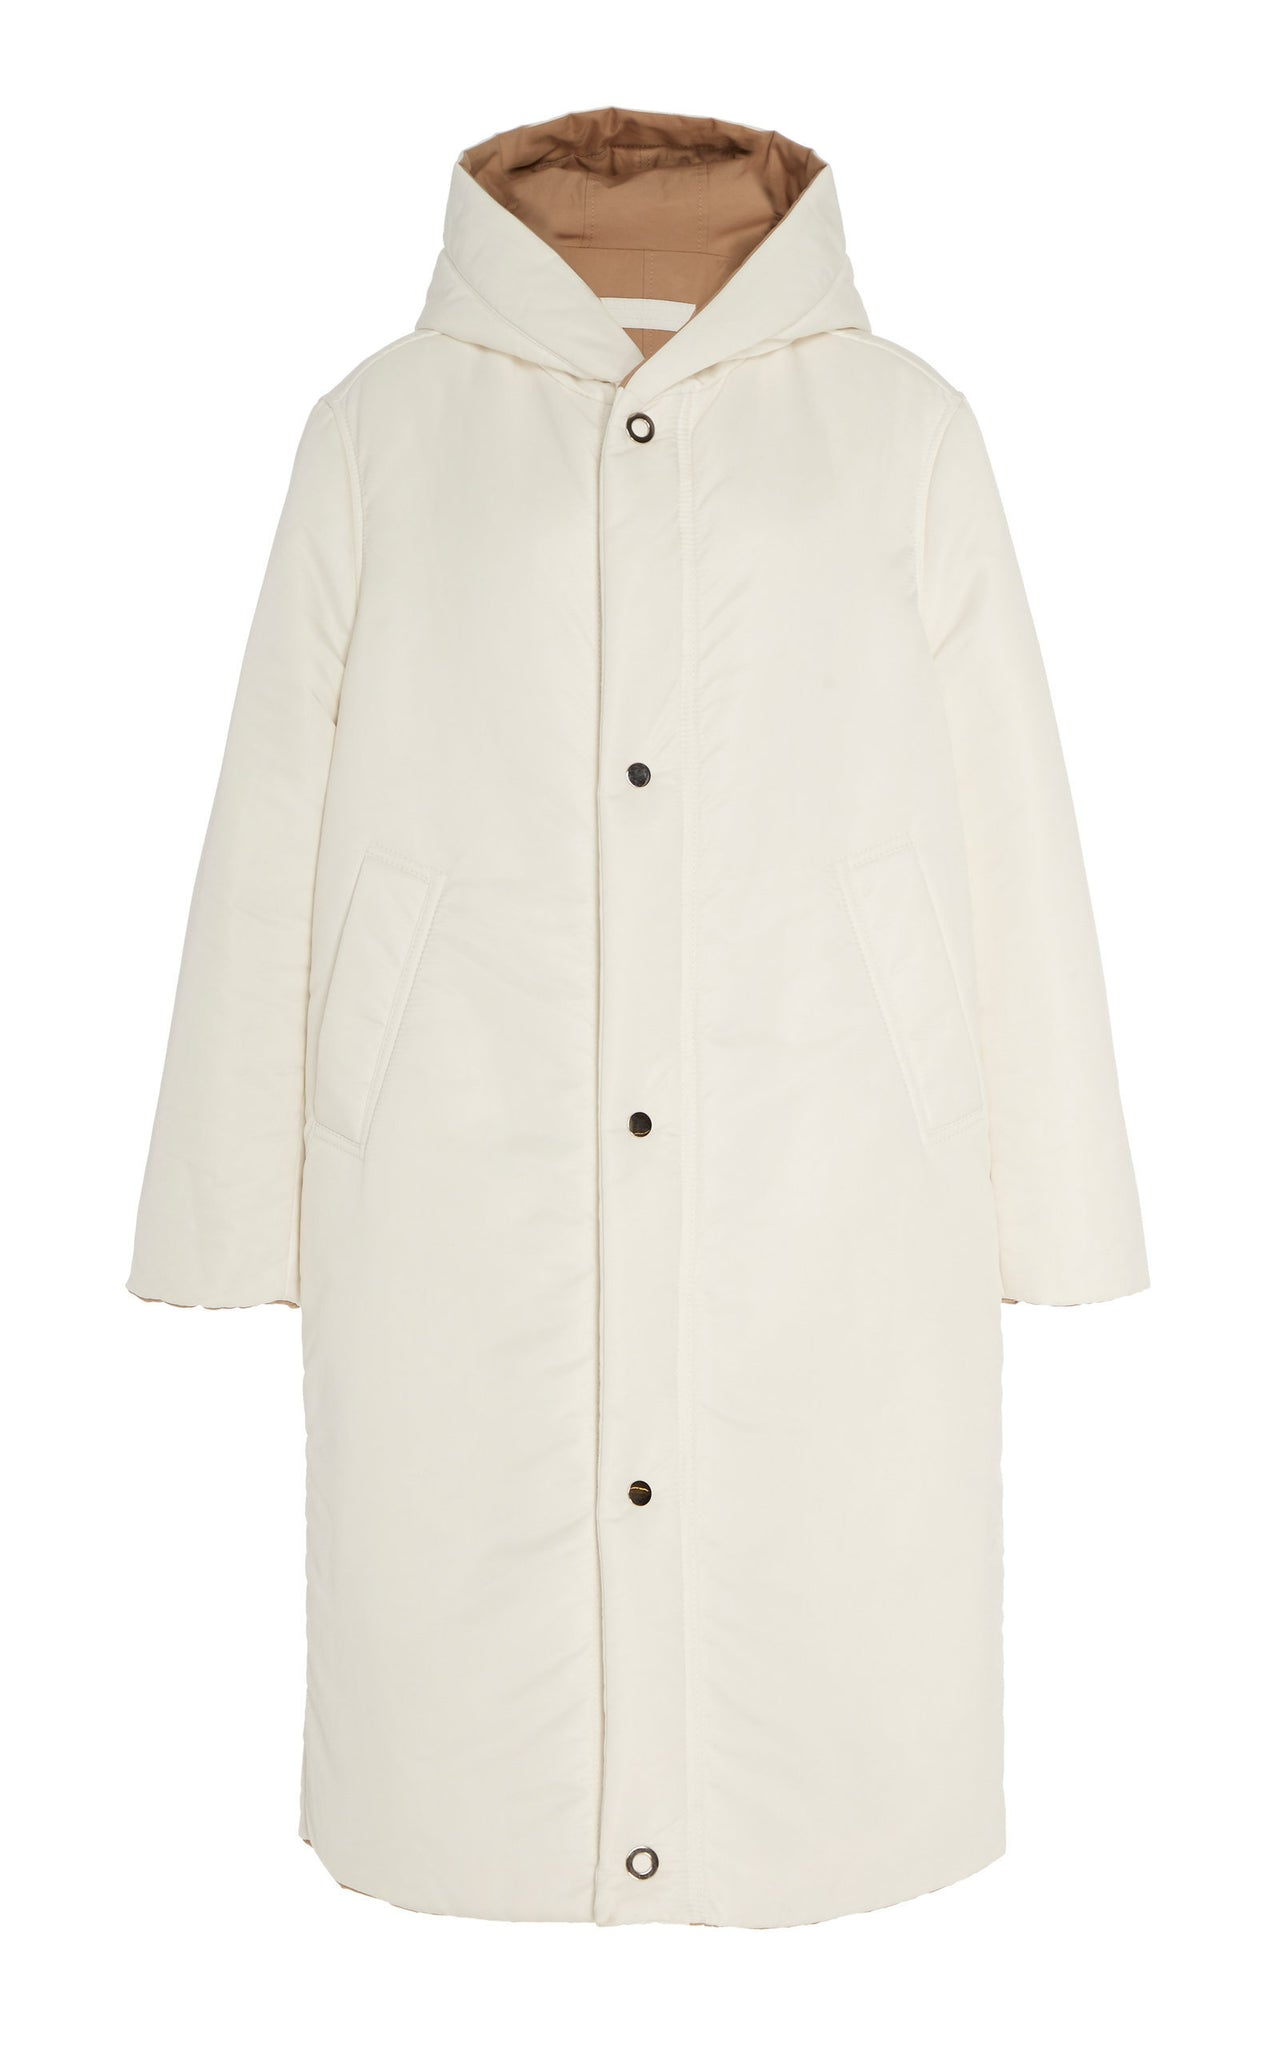 WHITE / CAMEL REVERSIBLE SATIN DOWN COAT